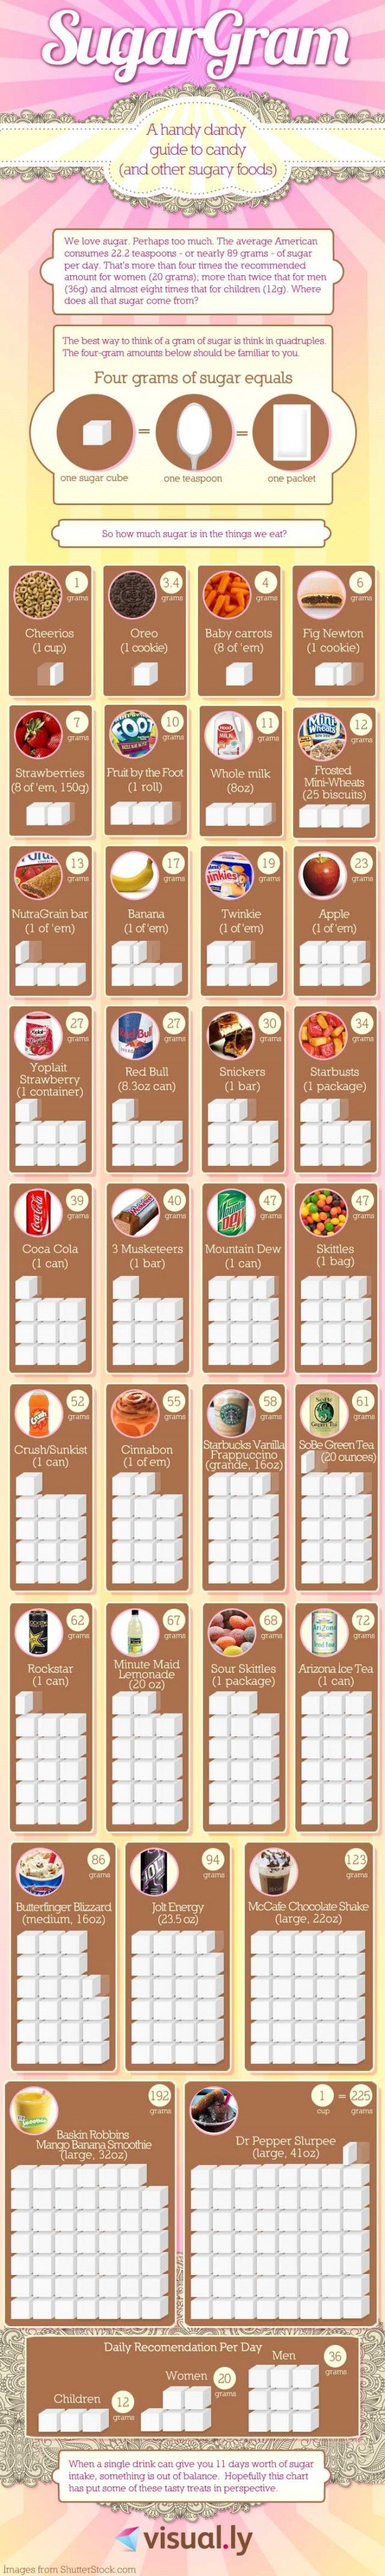 Your Guide to Sugar [infographic]